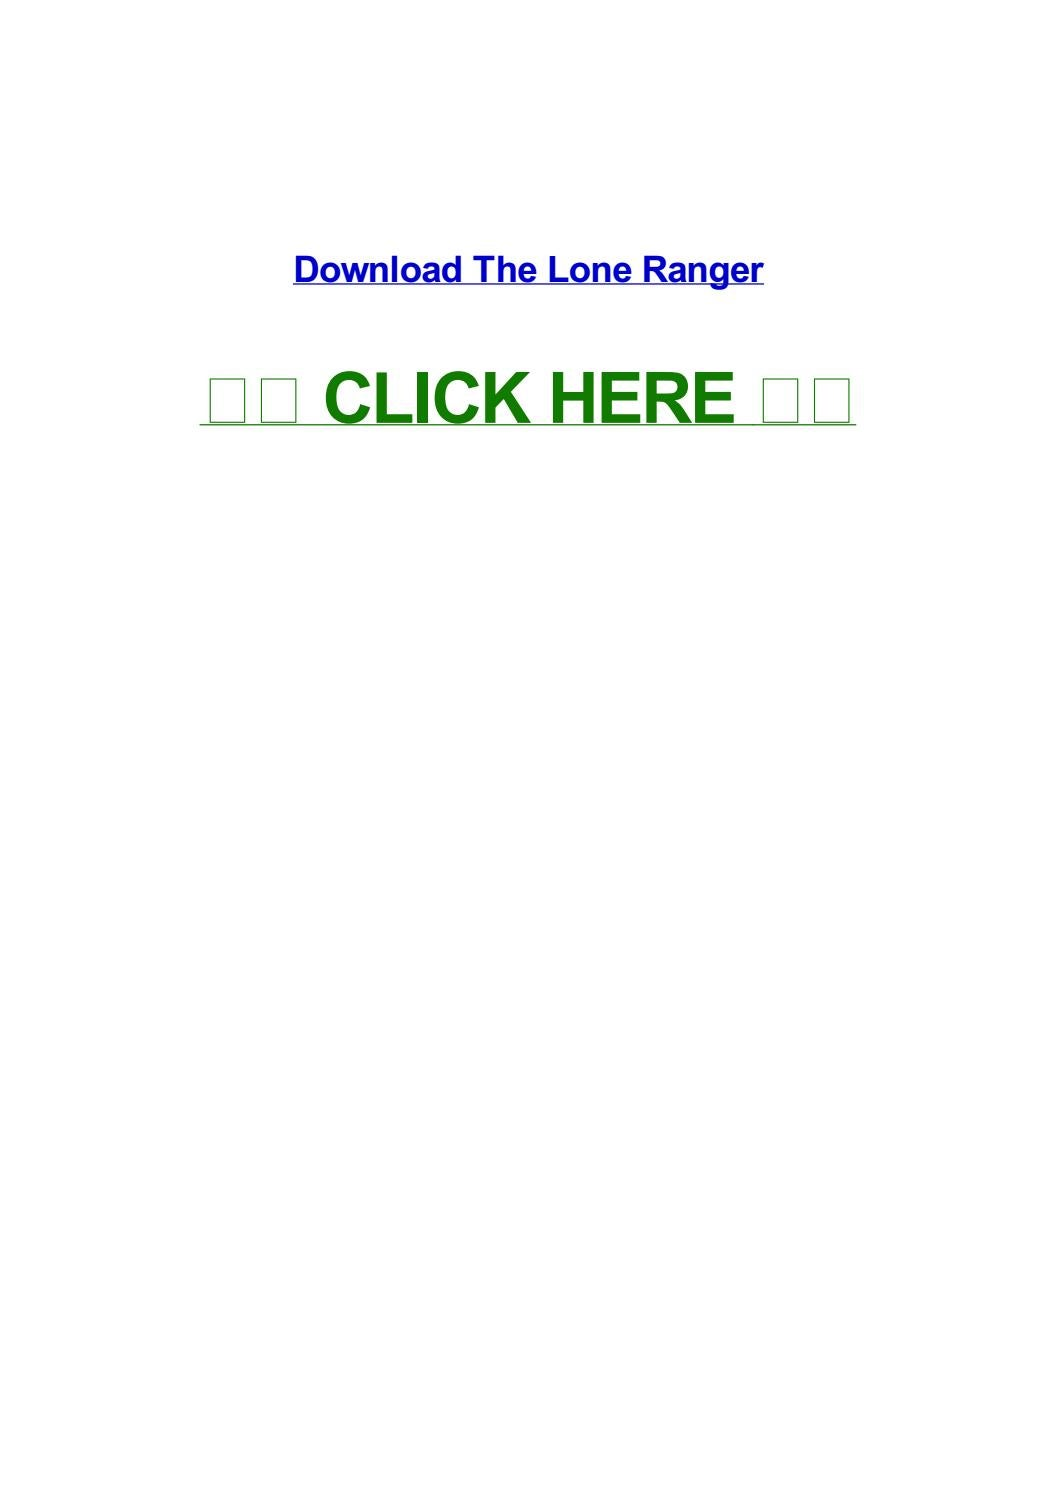 the lone ranger download yify